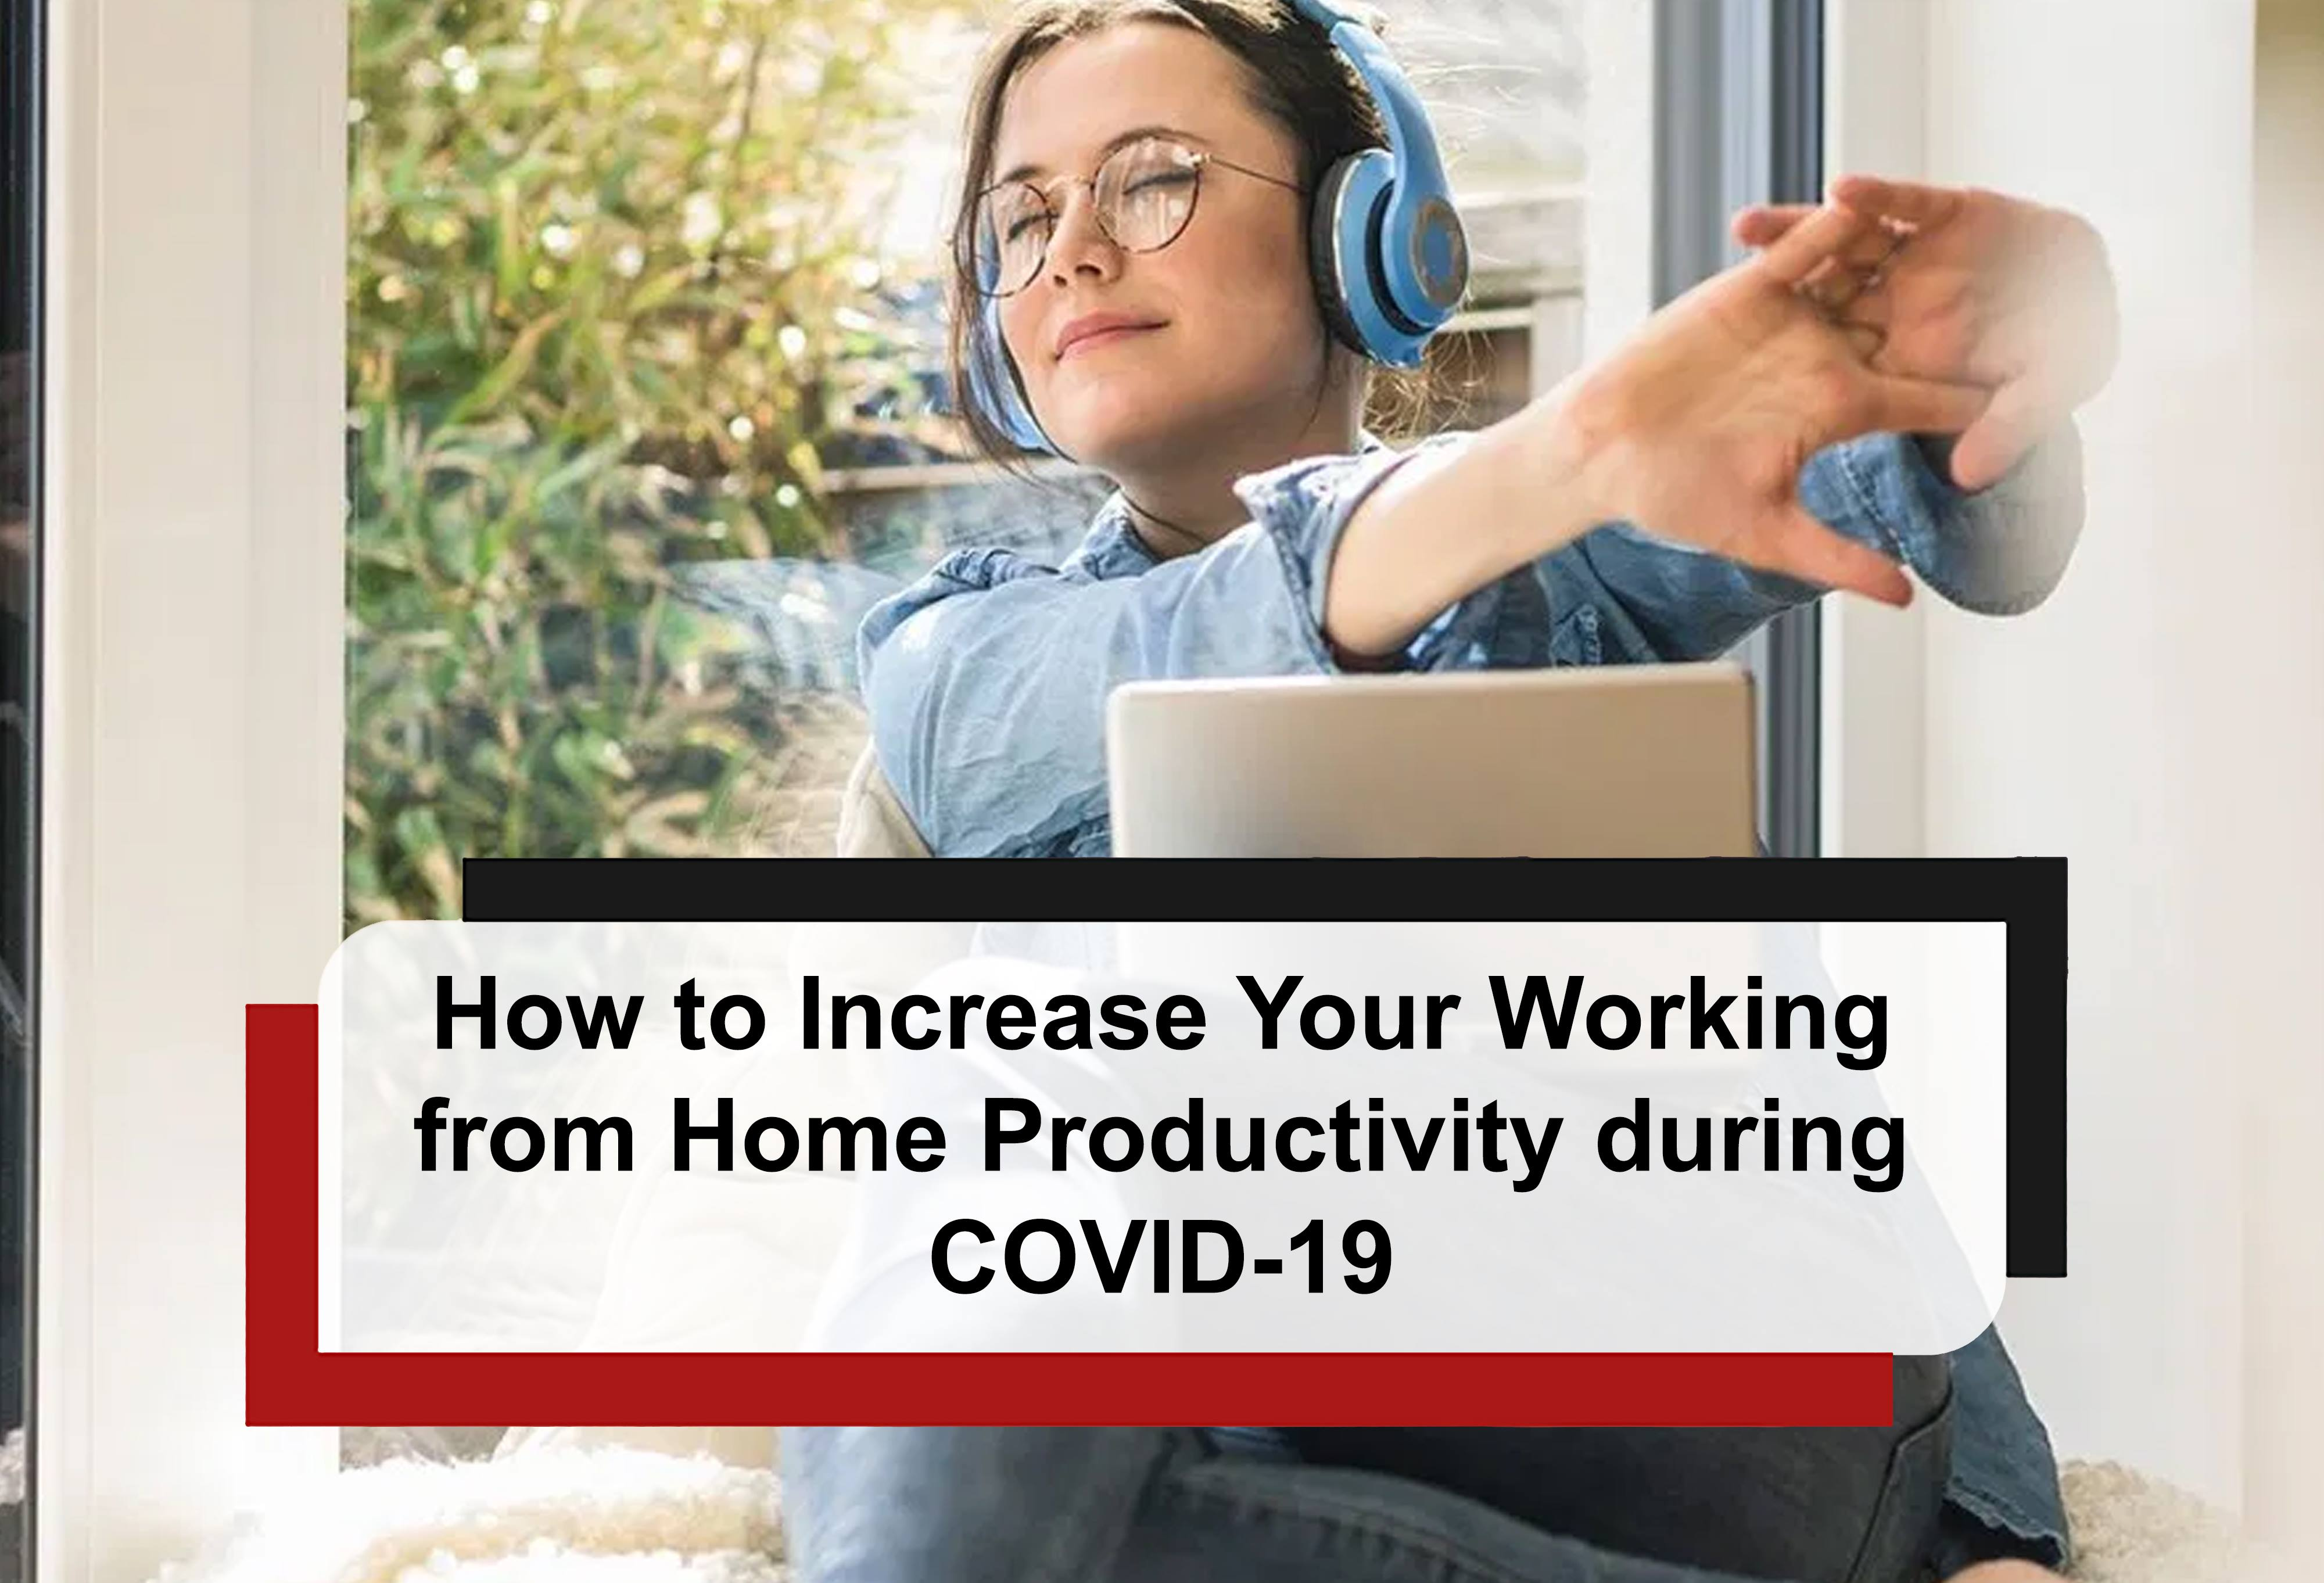 How to Increase Your Working from Home Productivity during COVID-19